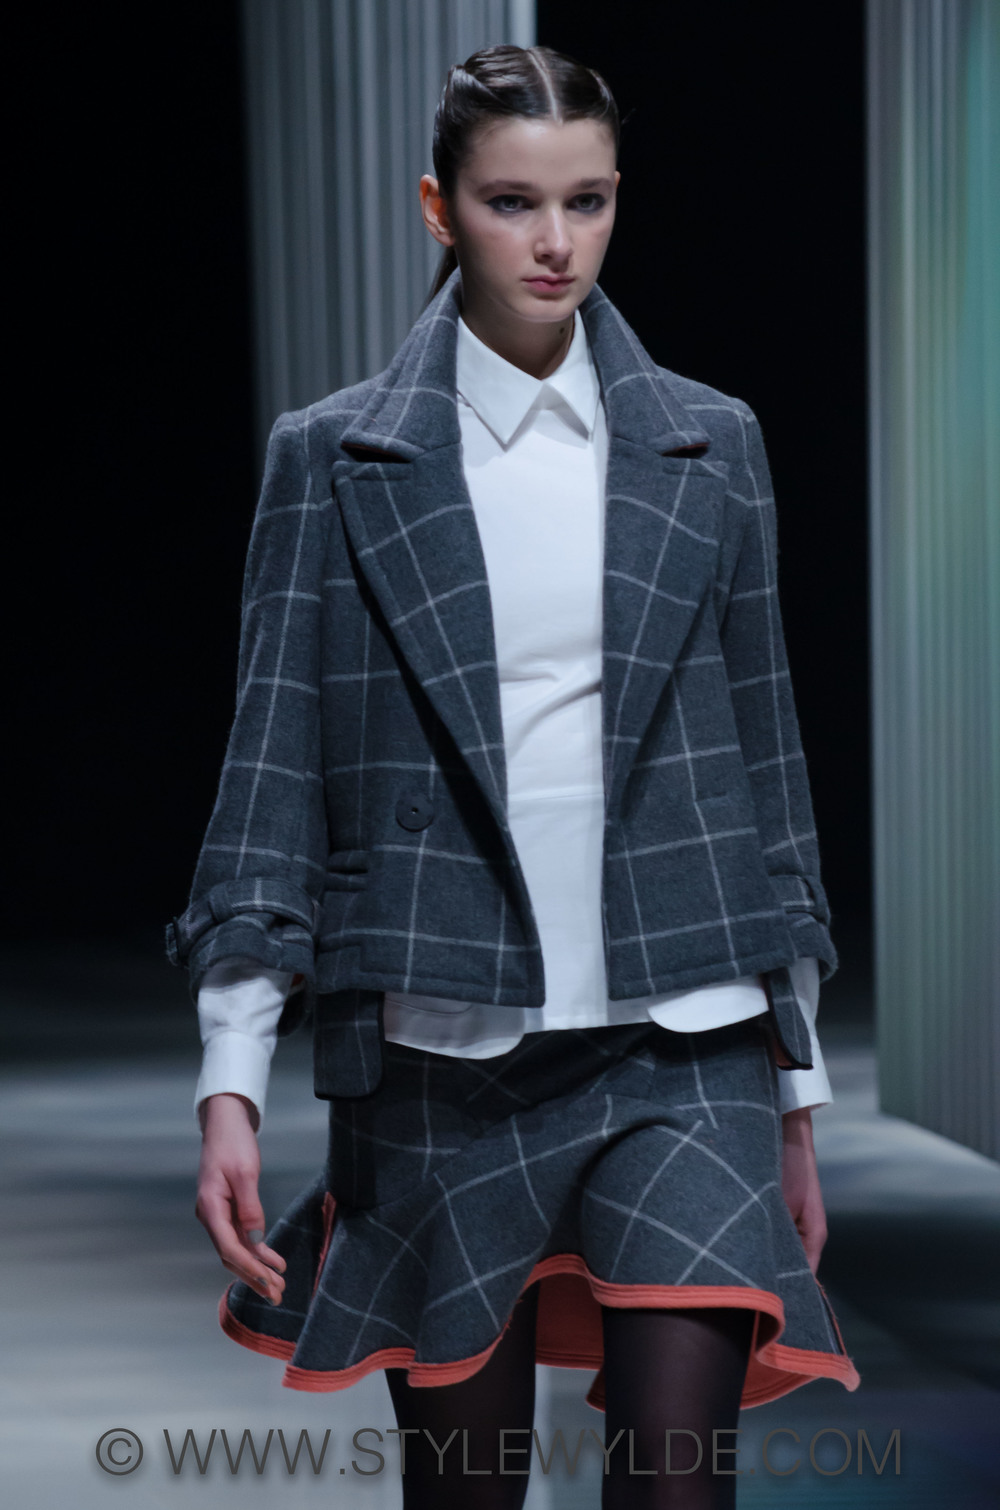 StyleWylde_Ujoh_AW14_story (1 of 1)-3.jpg